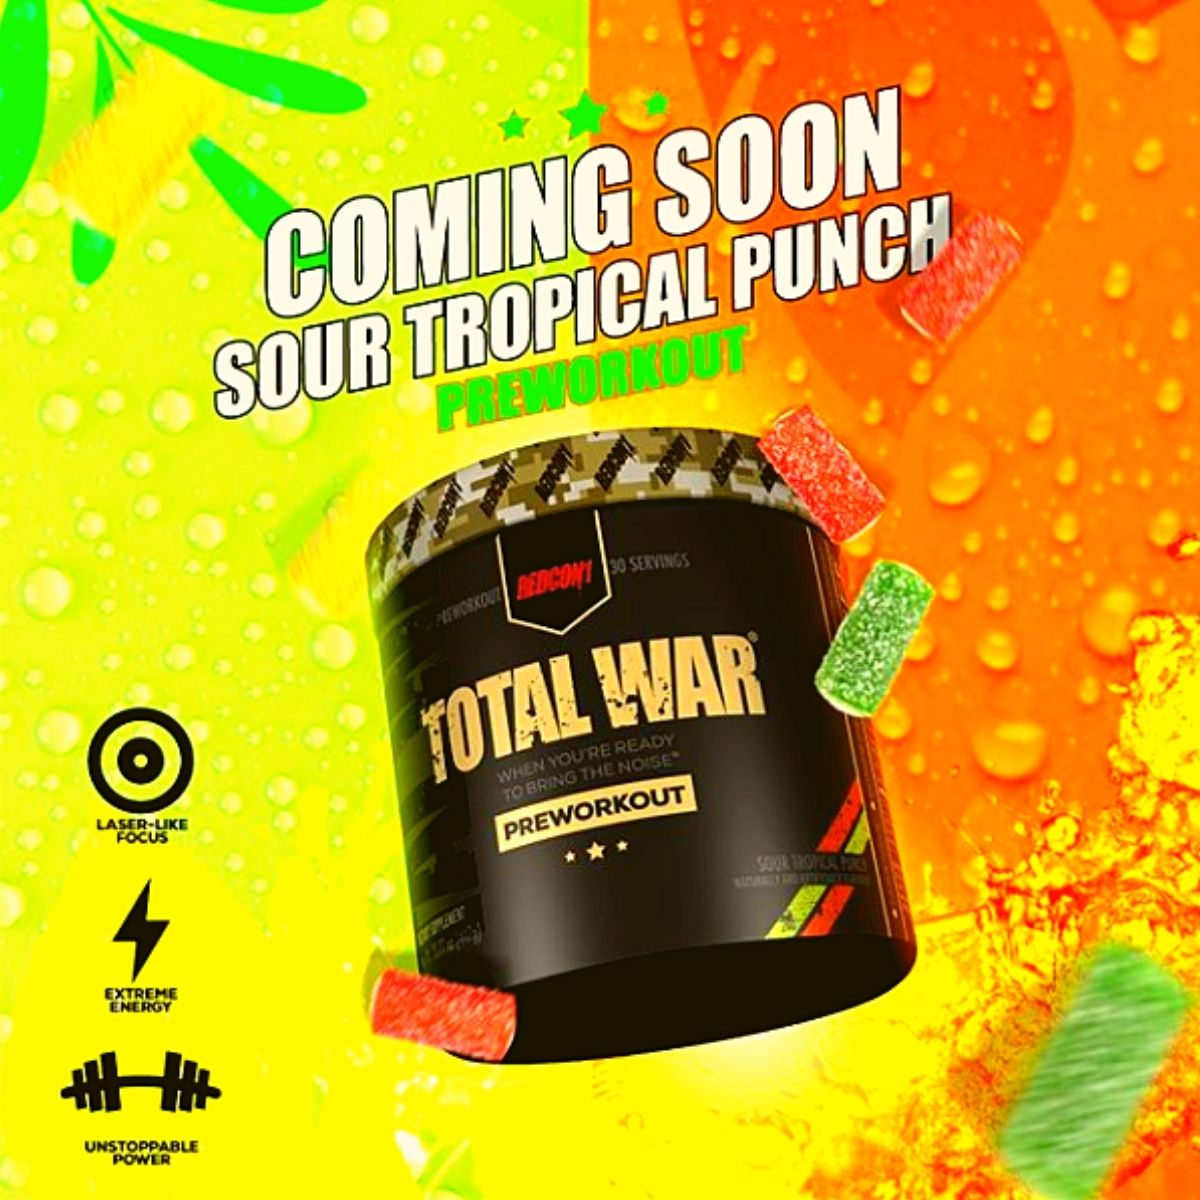 Redcon1 Keeps the New Total War Flavors Coming, Sour Tropical Punch Flavor Just Announced